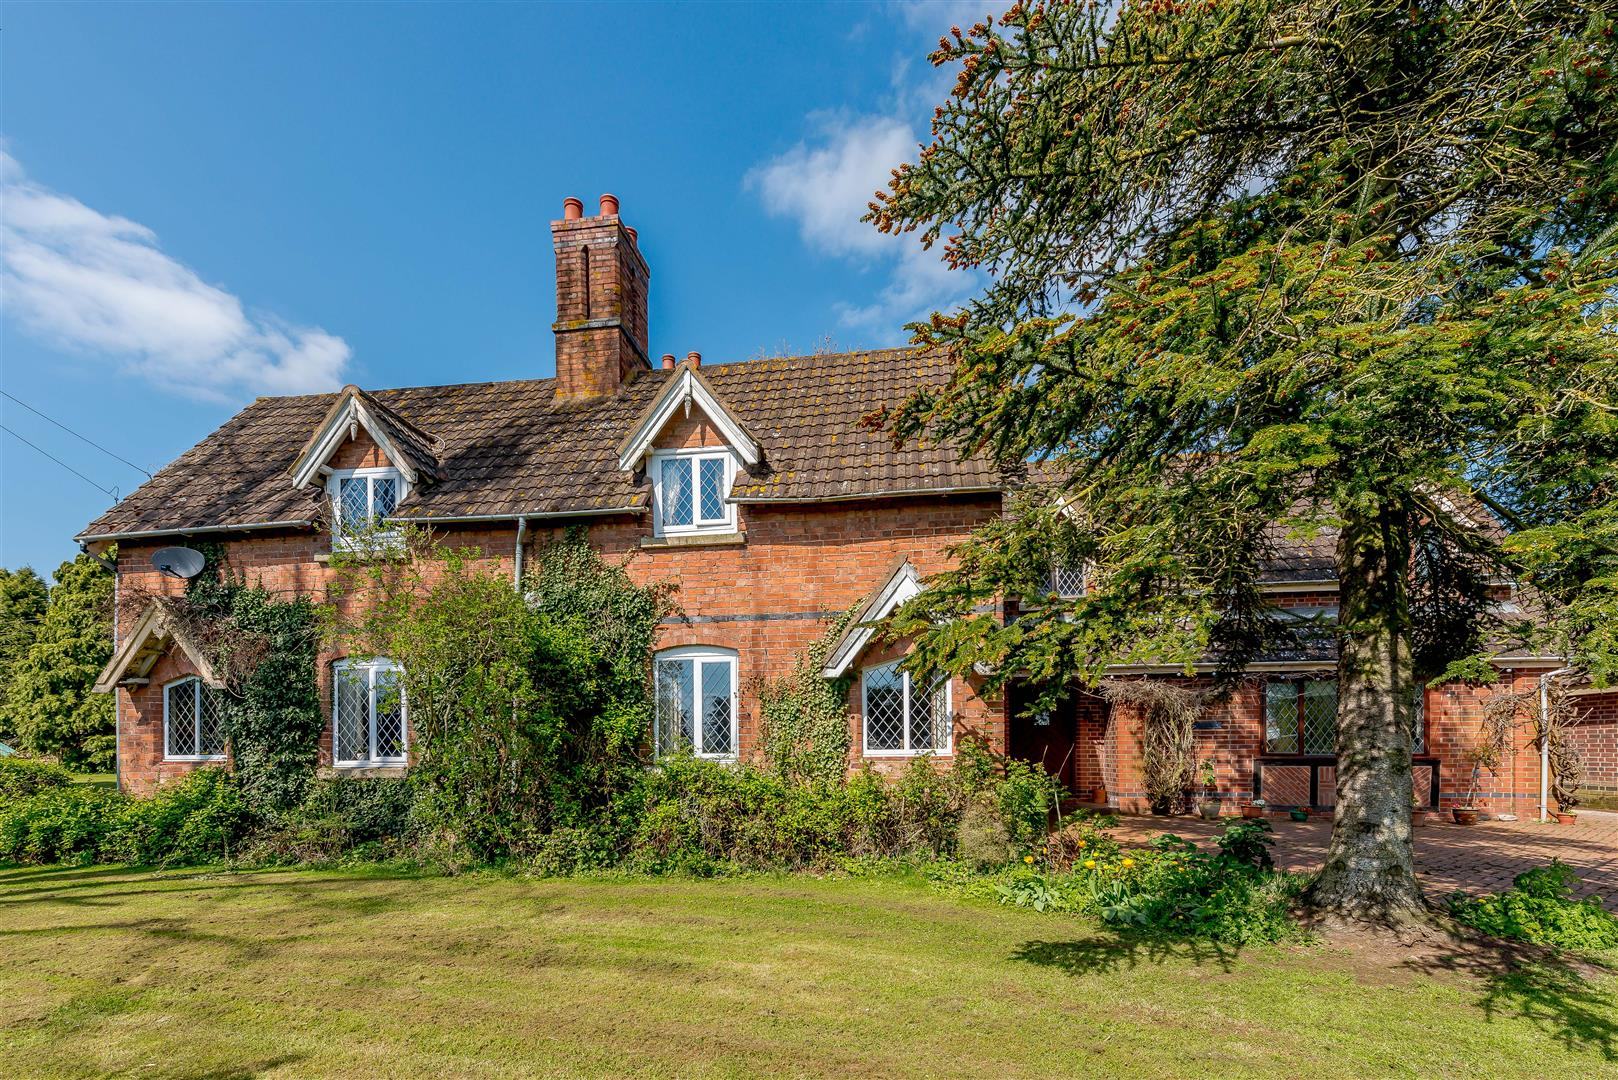 5 bedroom Detached House for sale in Droitwich Spa